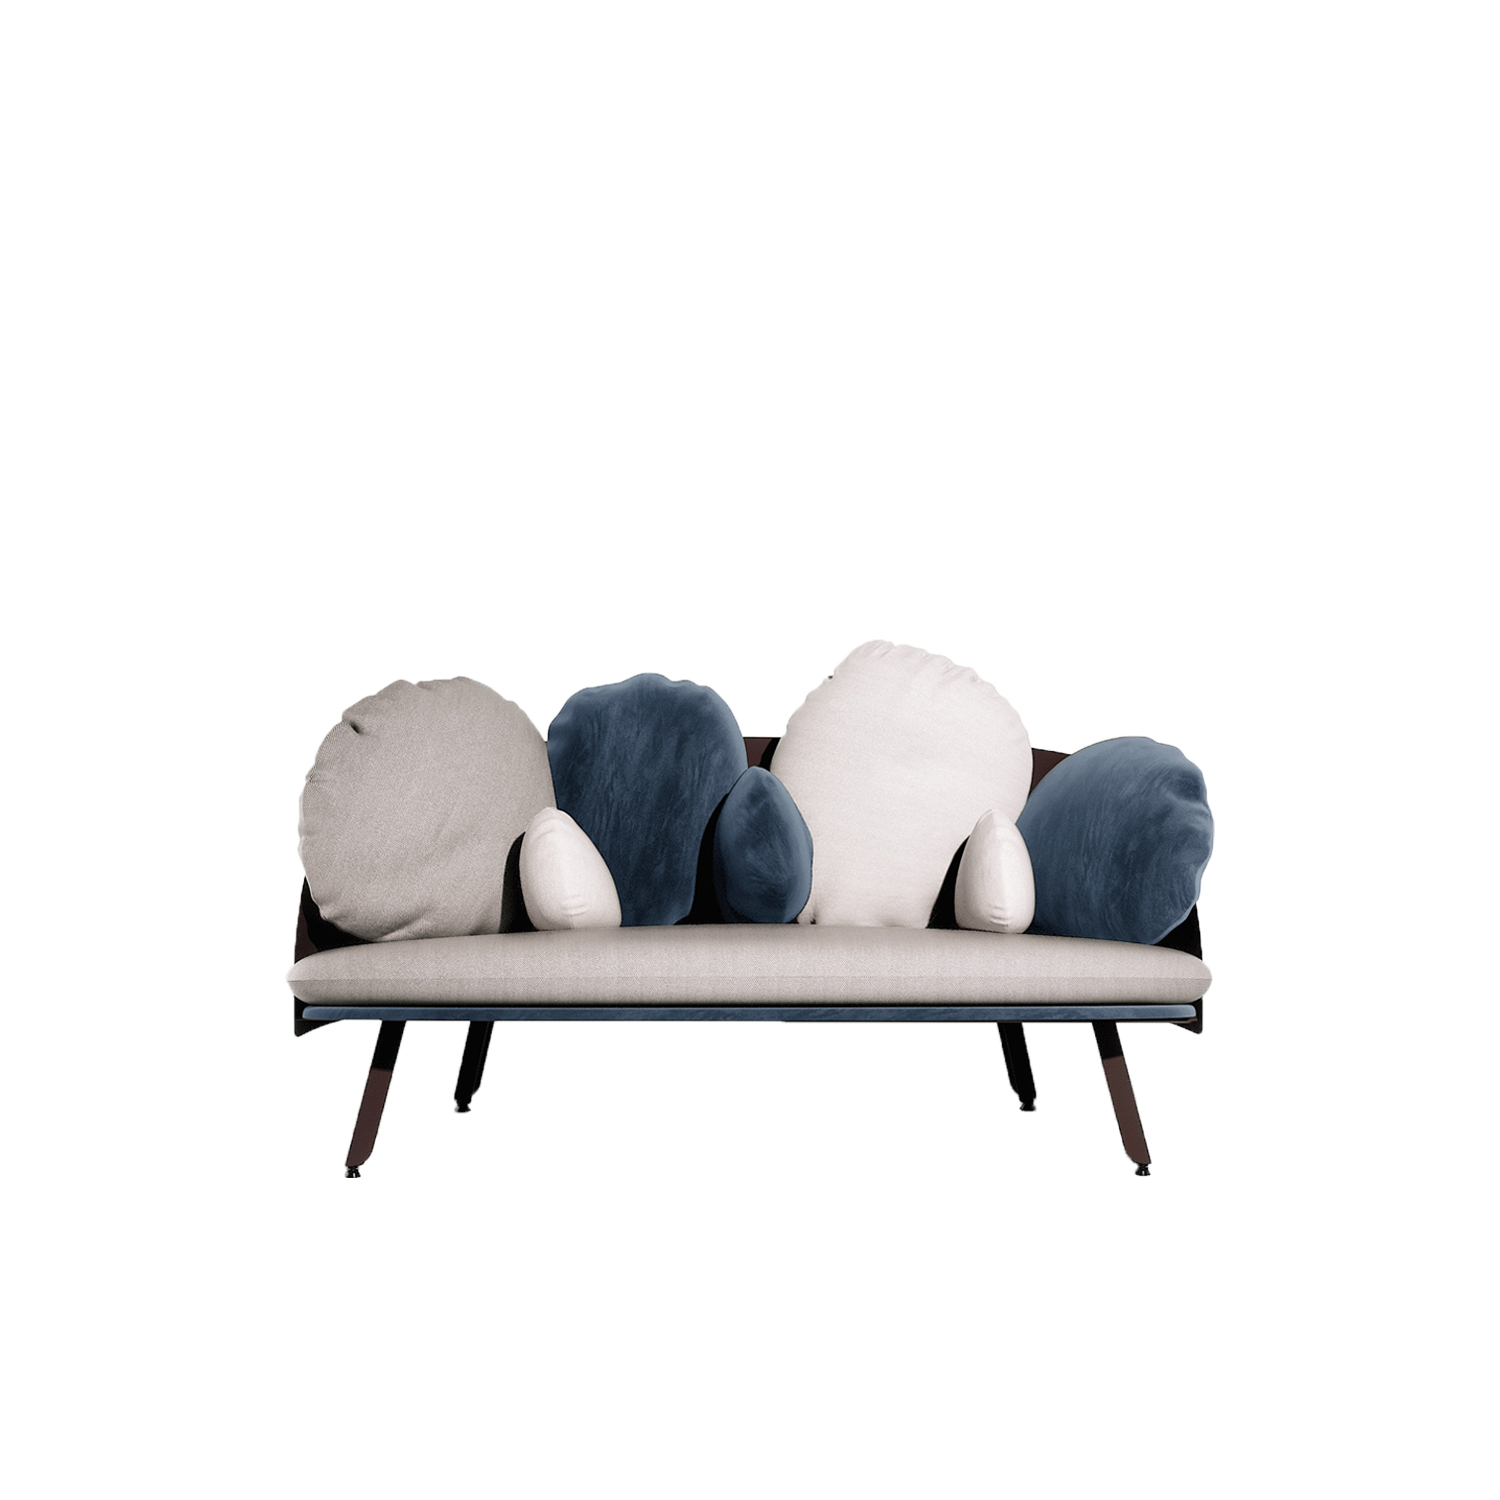 Nubilo Sofa - Designed by Constance Guisset, NUBILO is a sofa and armchair serie in which the multiplication of cushions evokes the image of a cloud. Softness, comfort, velvet, are accentuated by the association of three high quality materials. The cushions vary in their size and form and ask to be played with. Attached to the sofa structure by elastics and pressure they can be moved and repositioned according to desire.  | Matter of Stuff